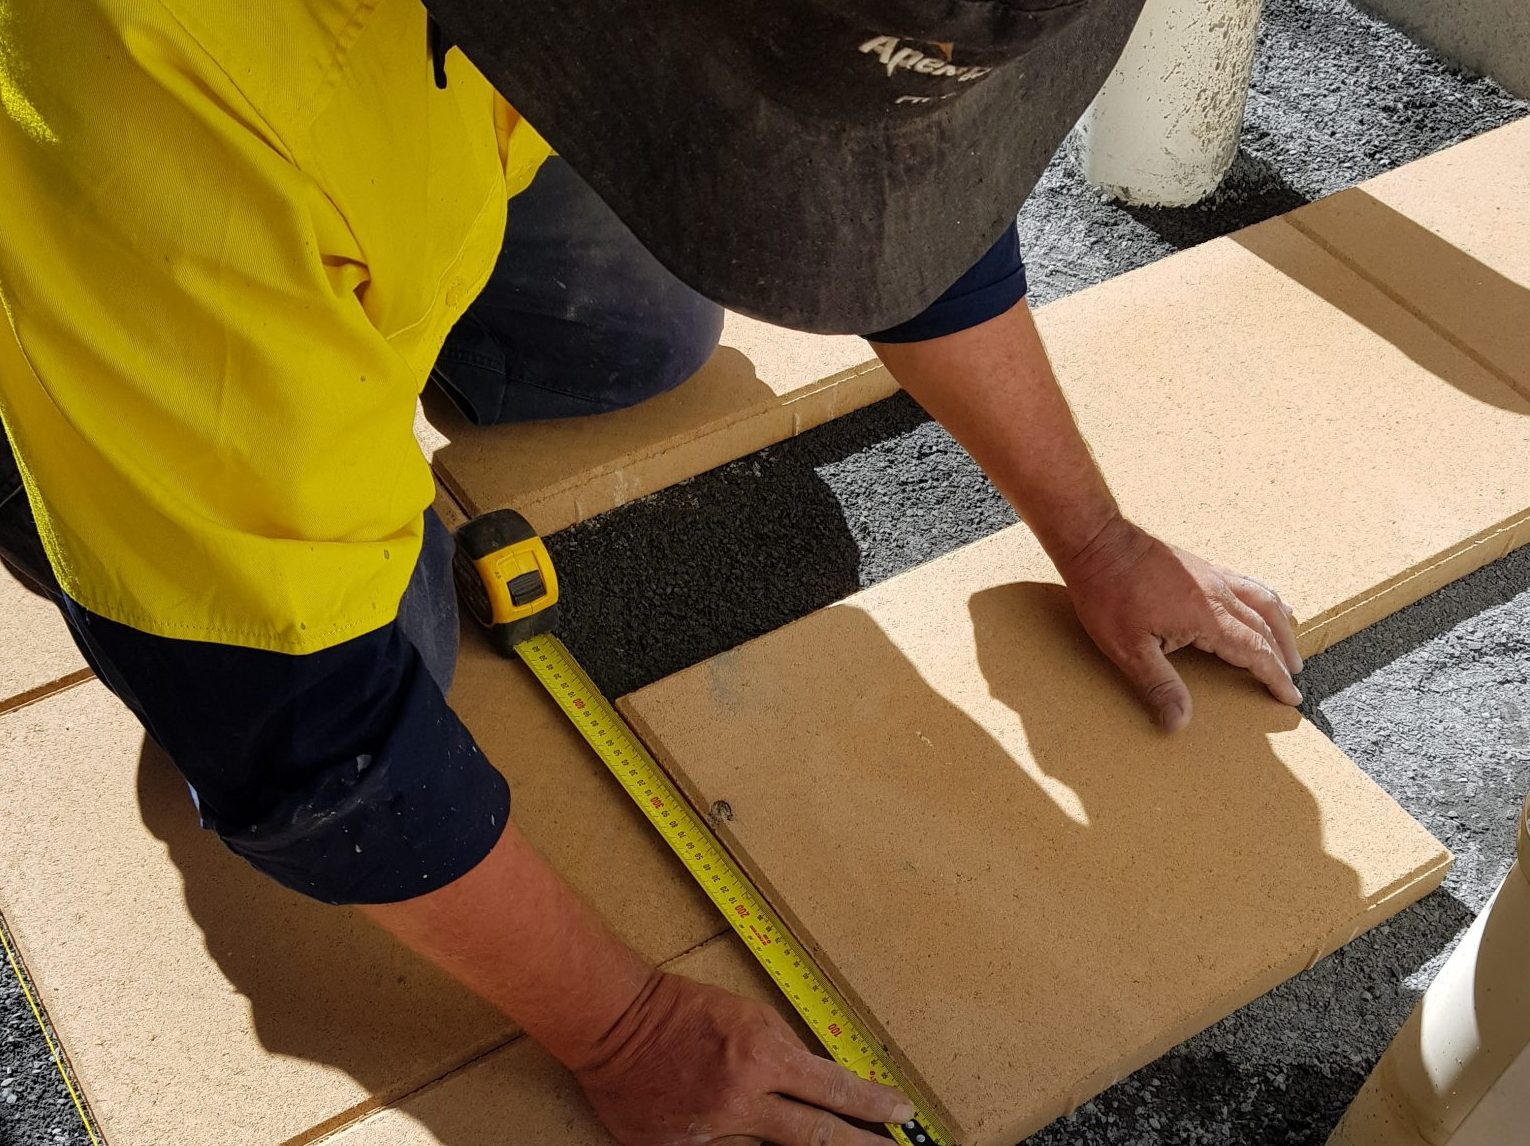 Paving_installer_measuring_pavers_on_crusher_dust.